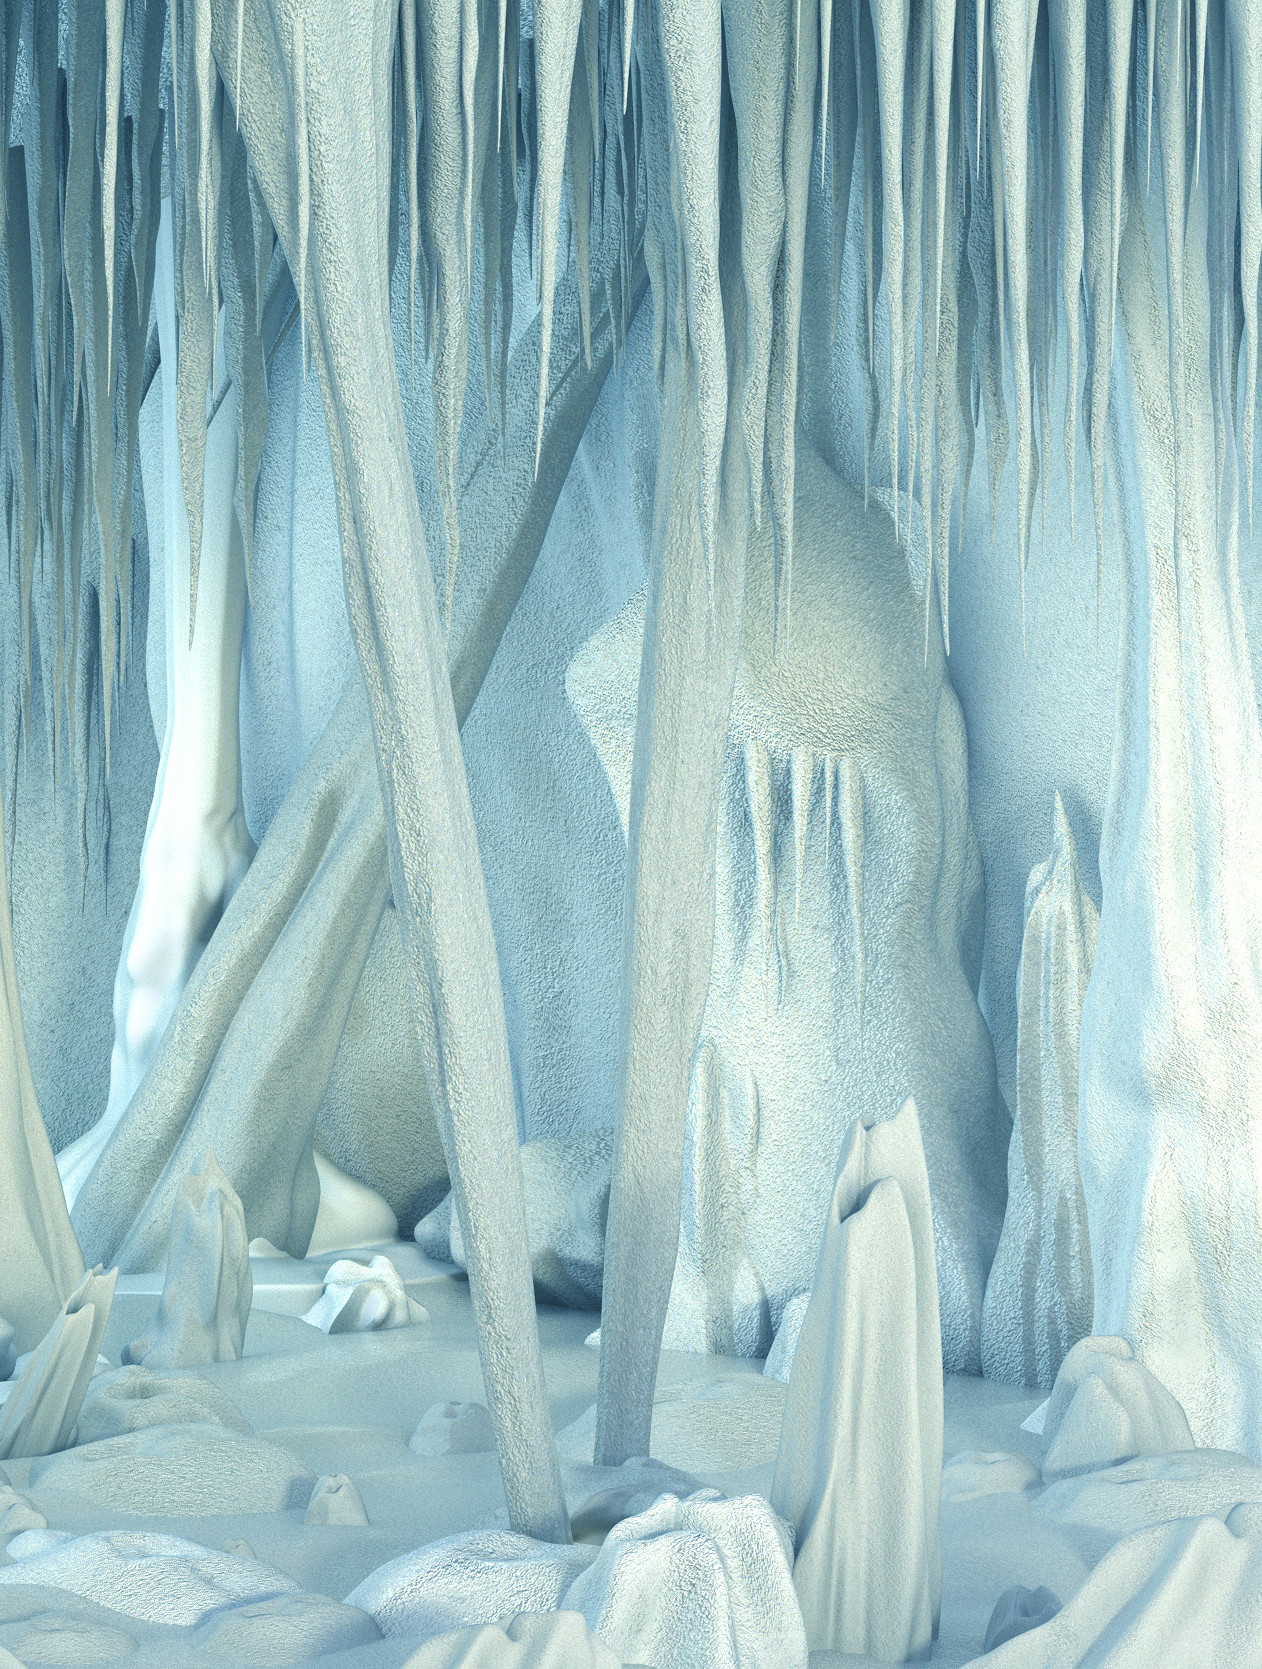 Marc mons icecave4